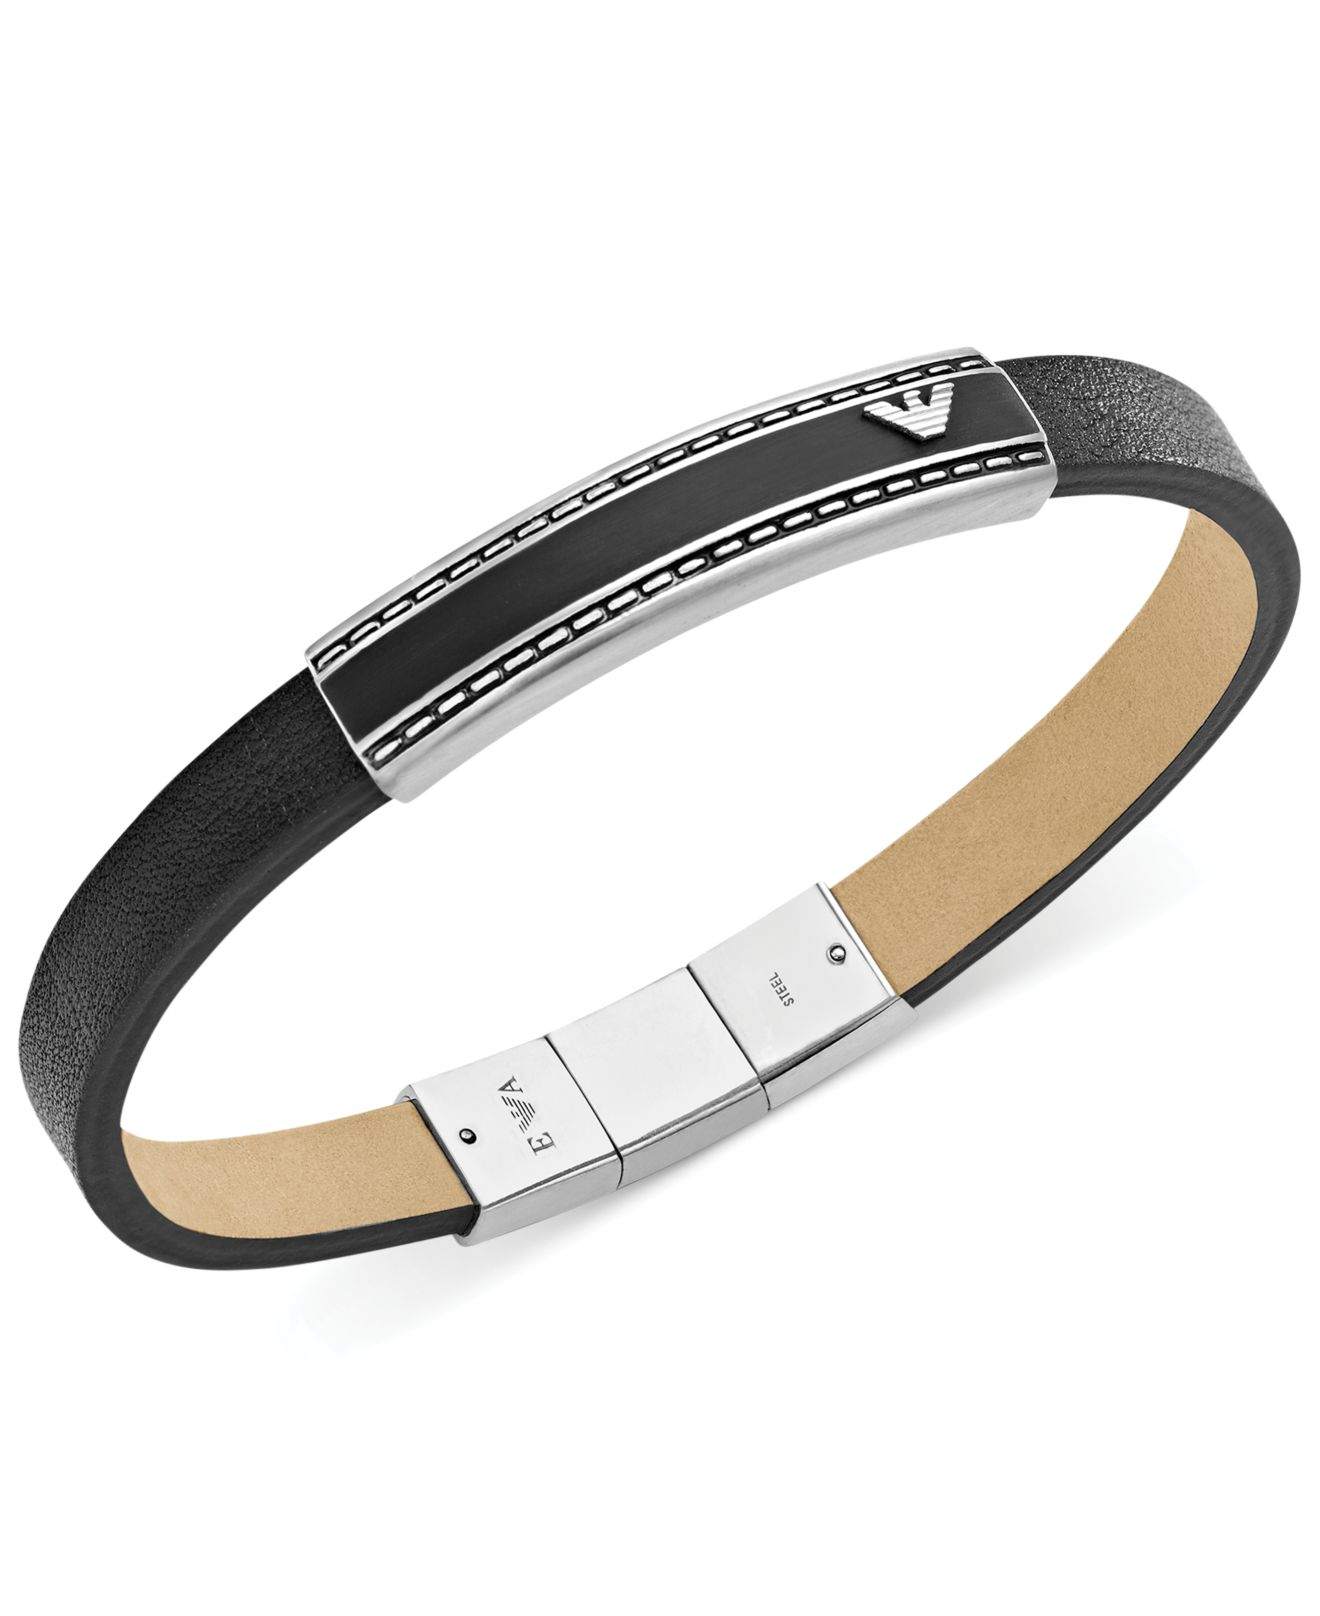 Emporio Armani Men S Stainless Steel And Black Leather